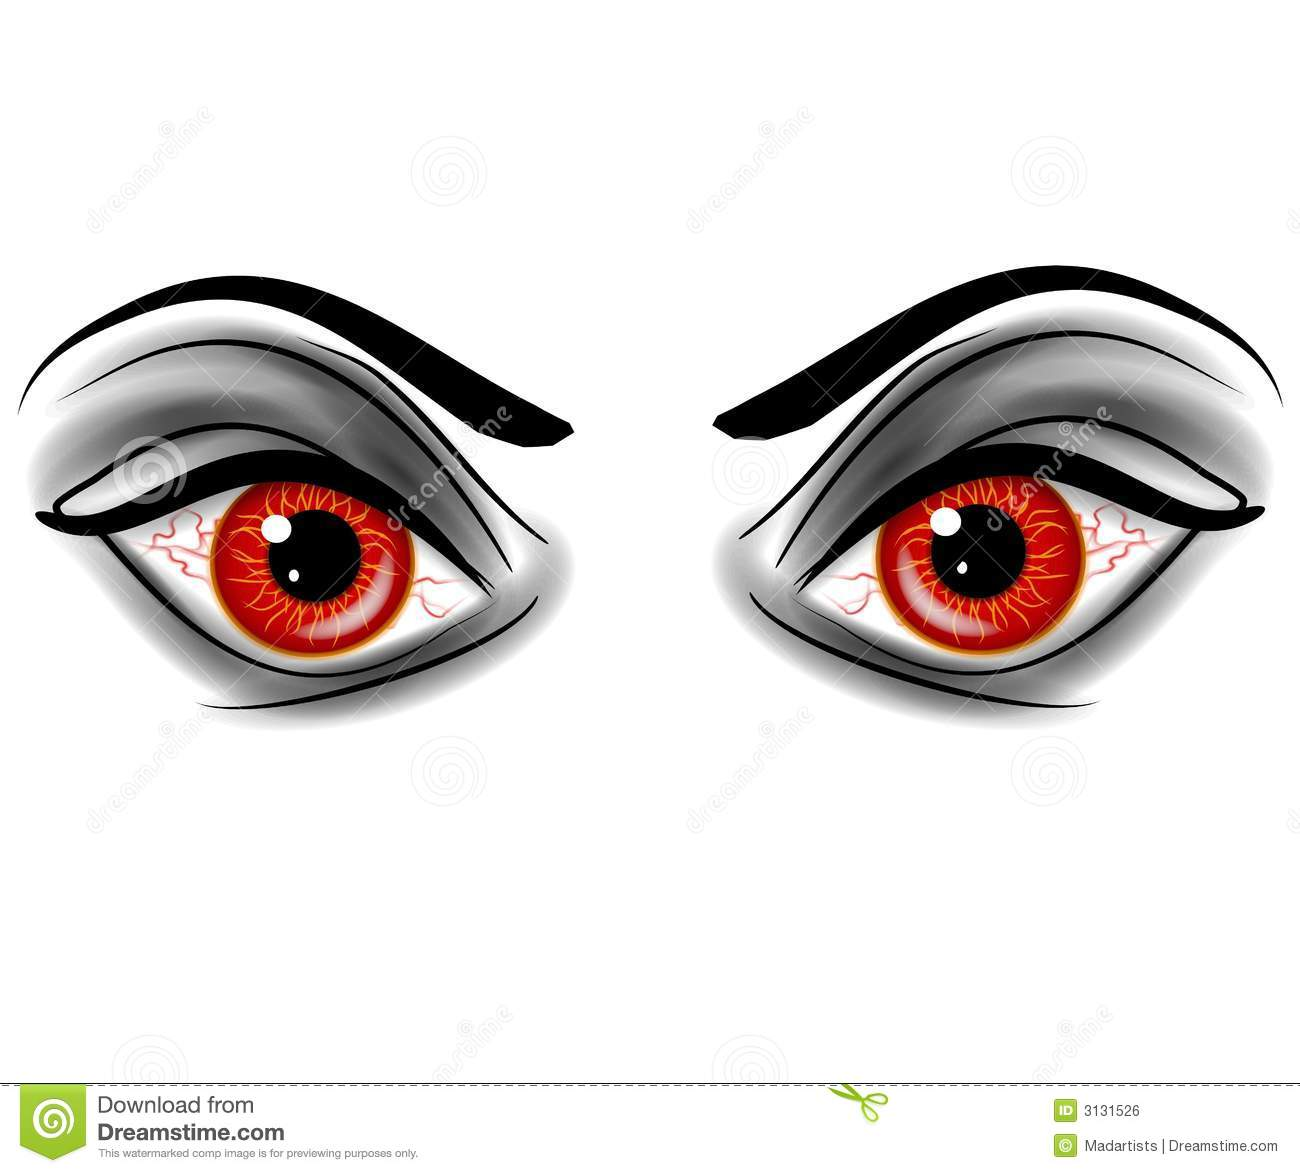 Demon eyes clipart.